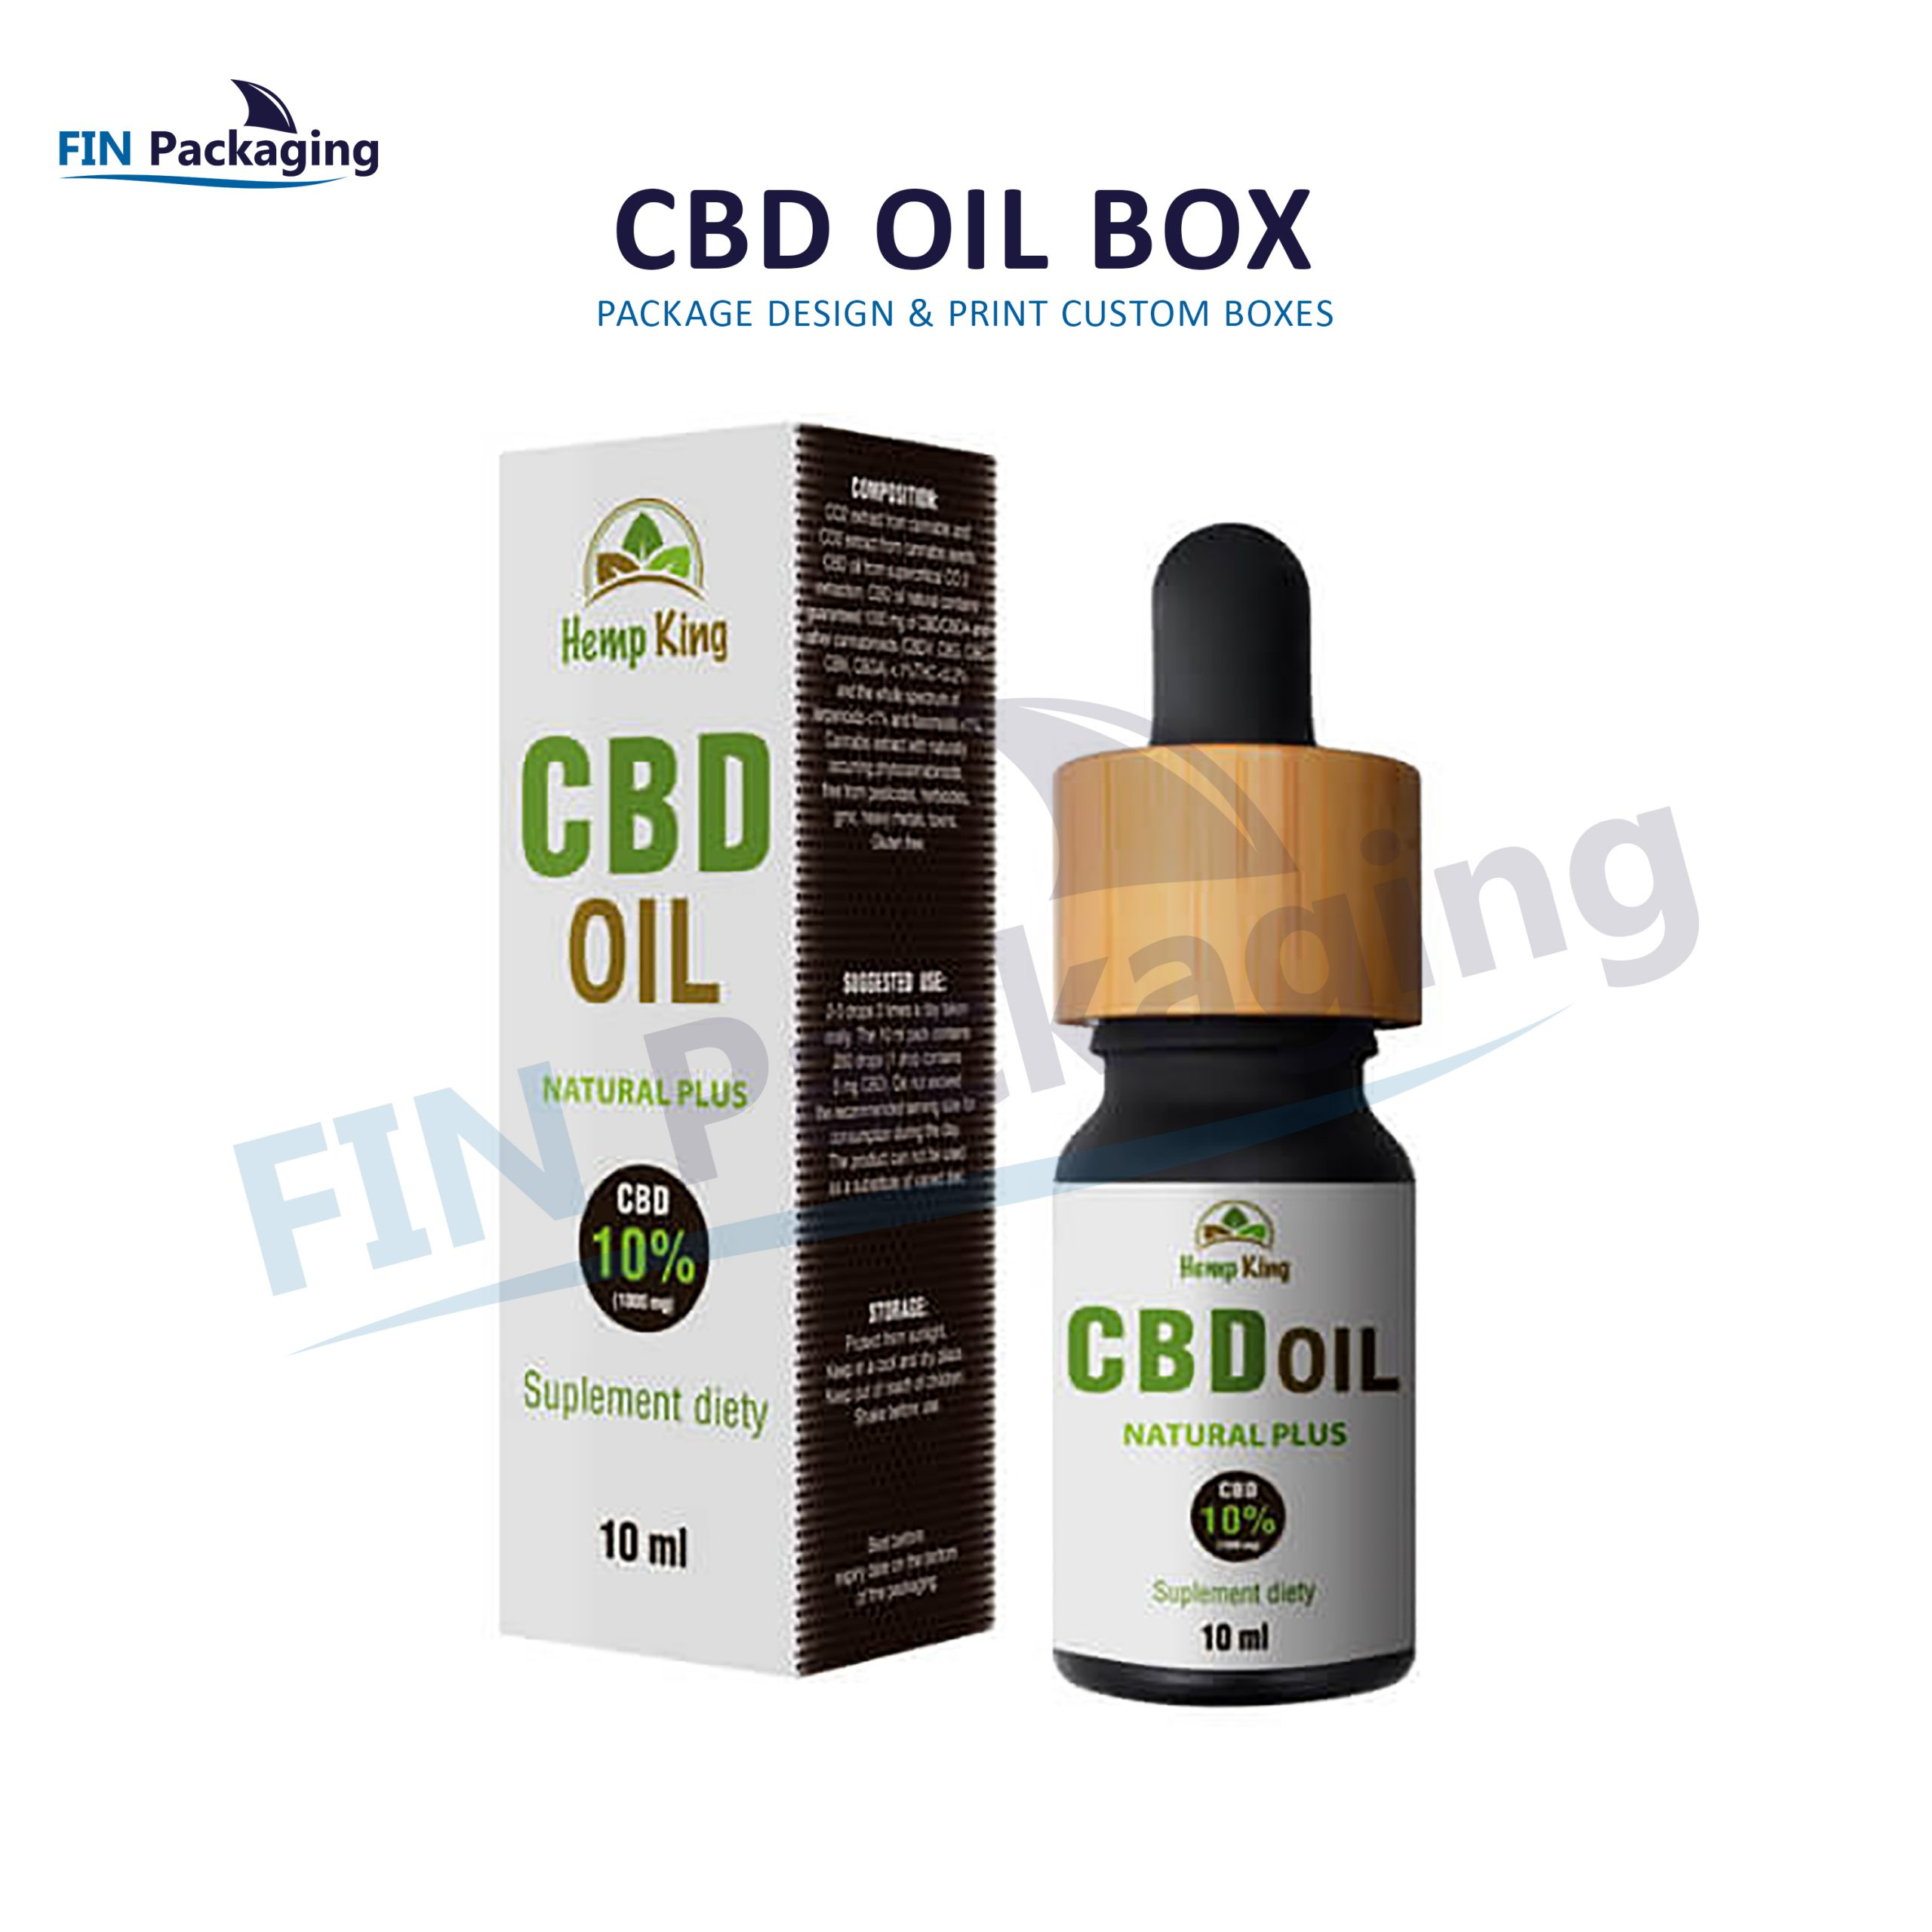 Custom Cbd Boxes with Different Sizes and Design